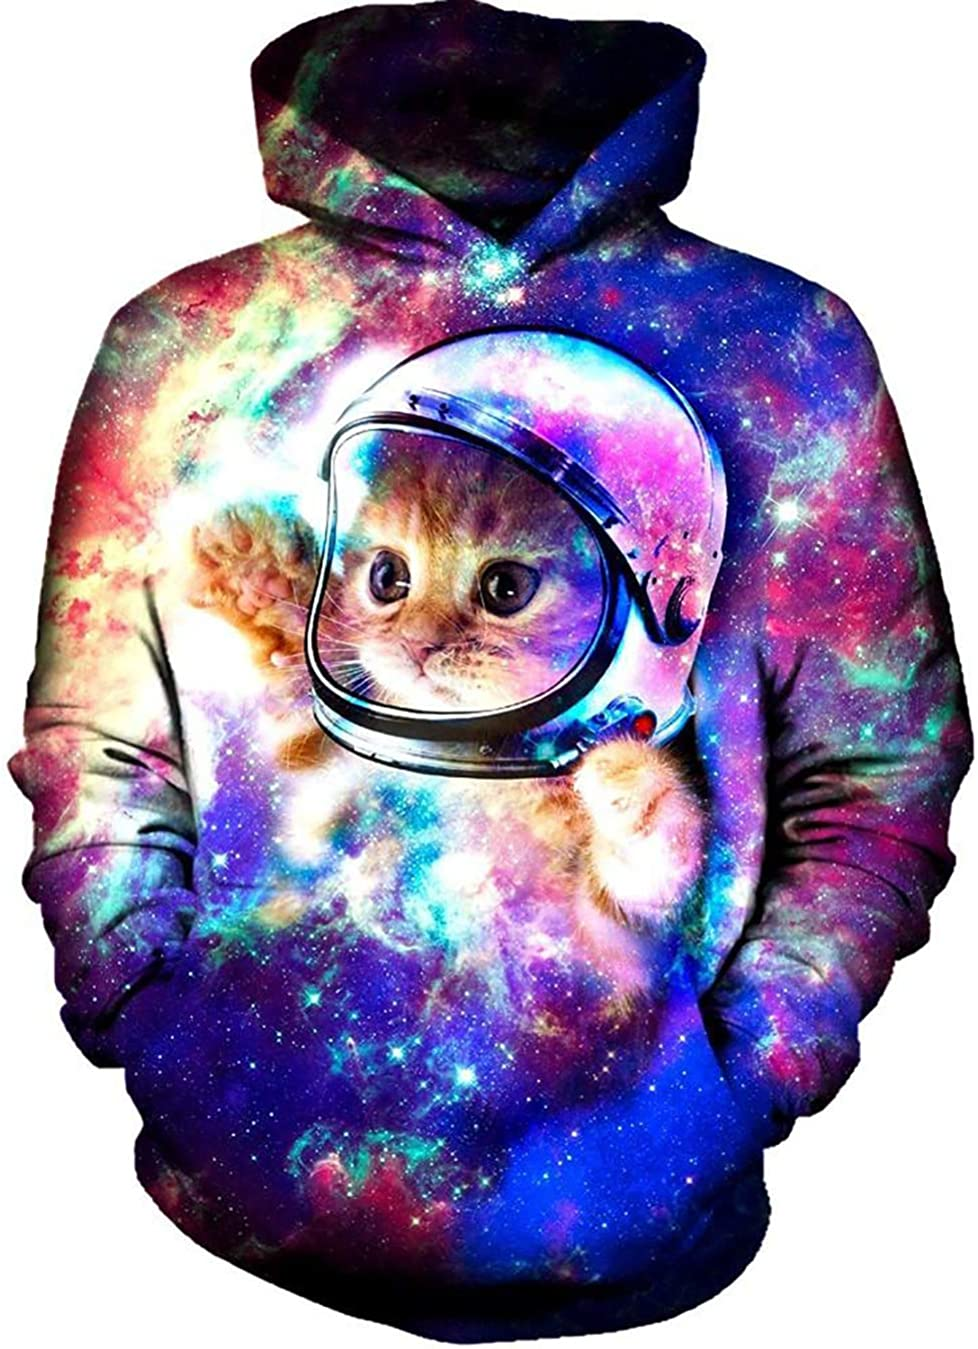 UNICOMIDEA Mens Womens 3D Max 72% OFF Hoodies Special price Sweatshirts Big with Pullover